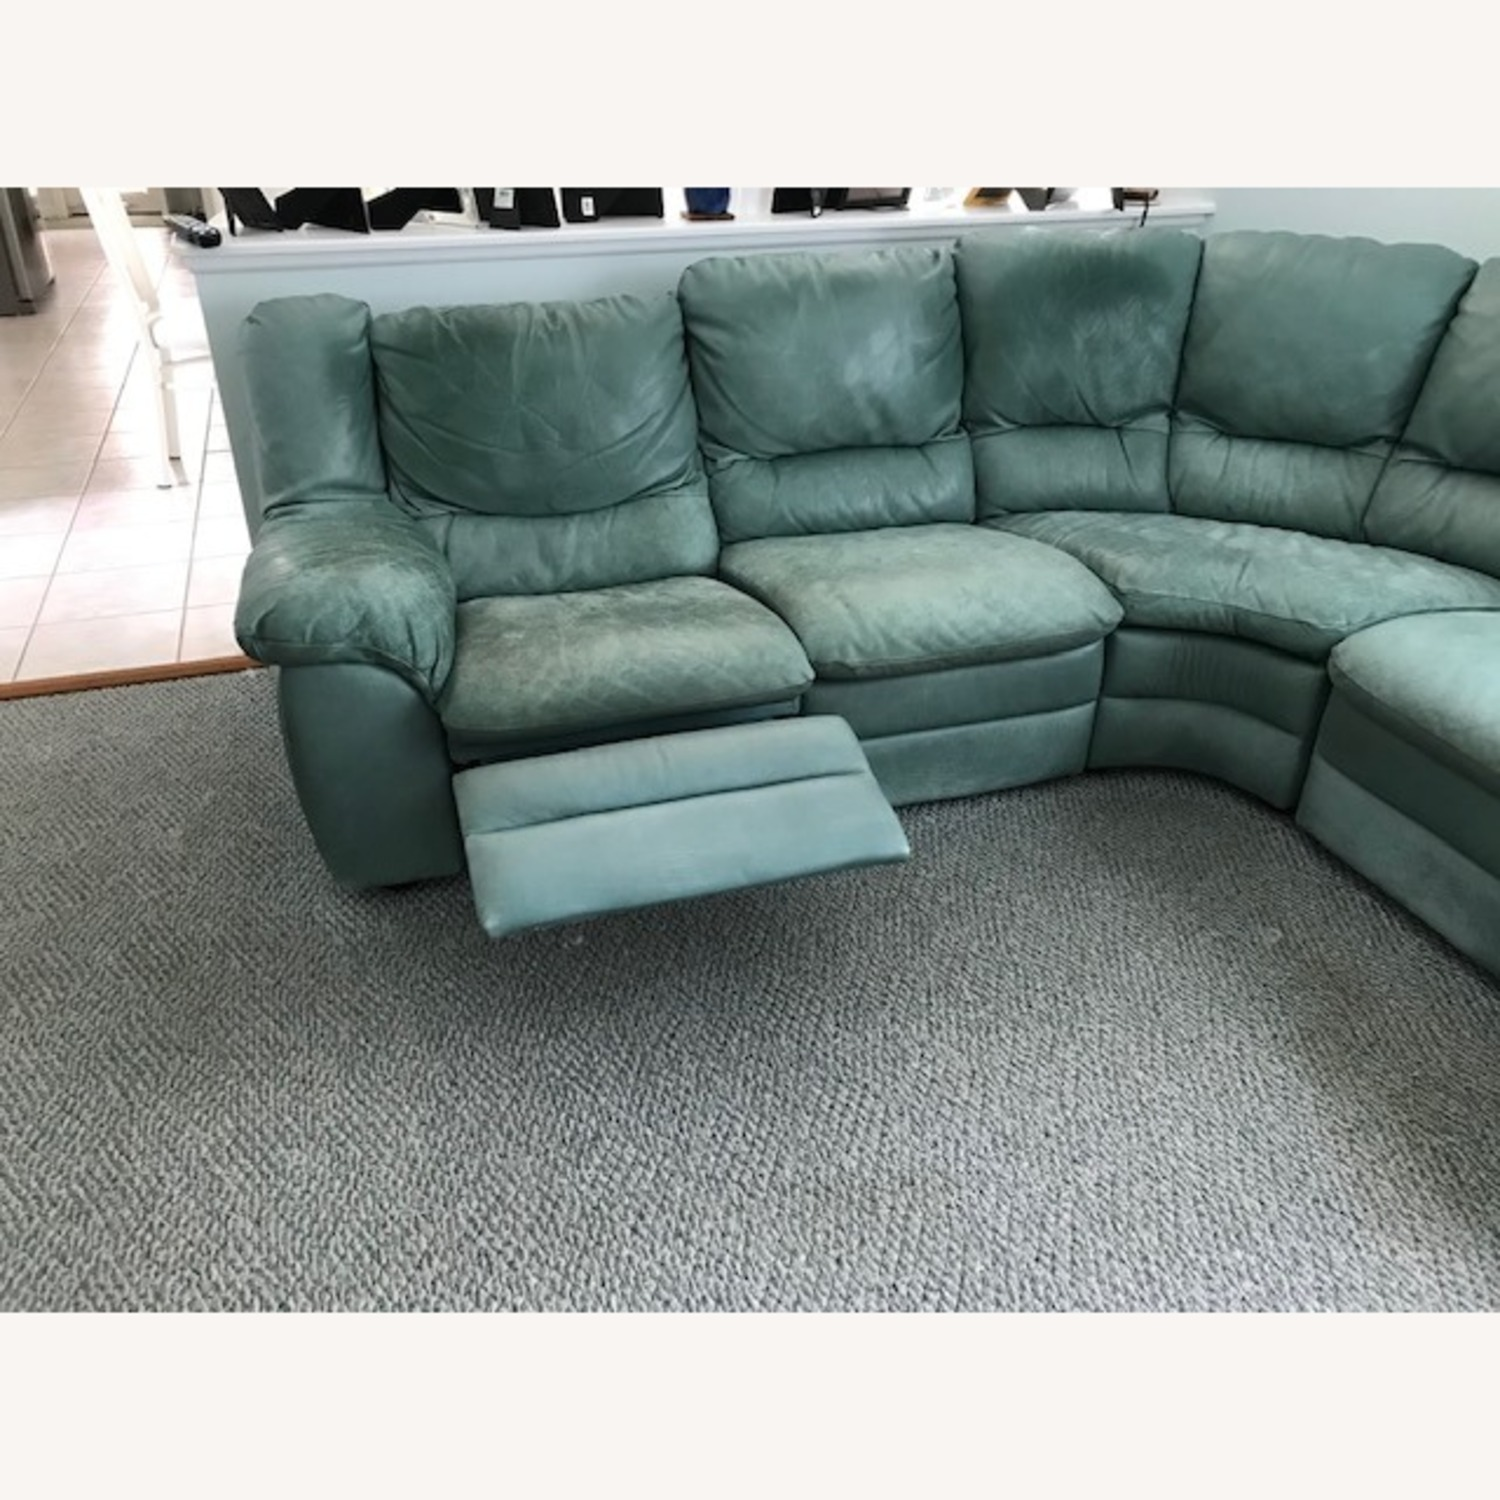 Natuzzi Teal Colored Sectional Couch - image-6